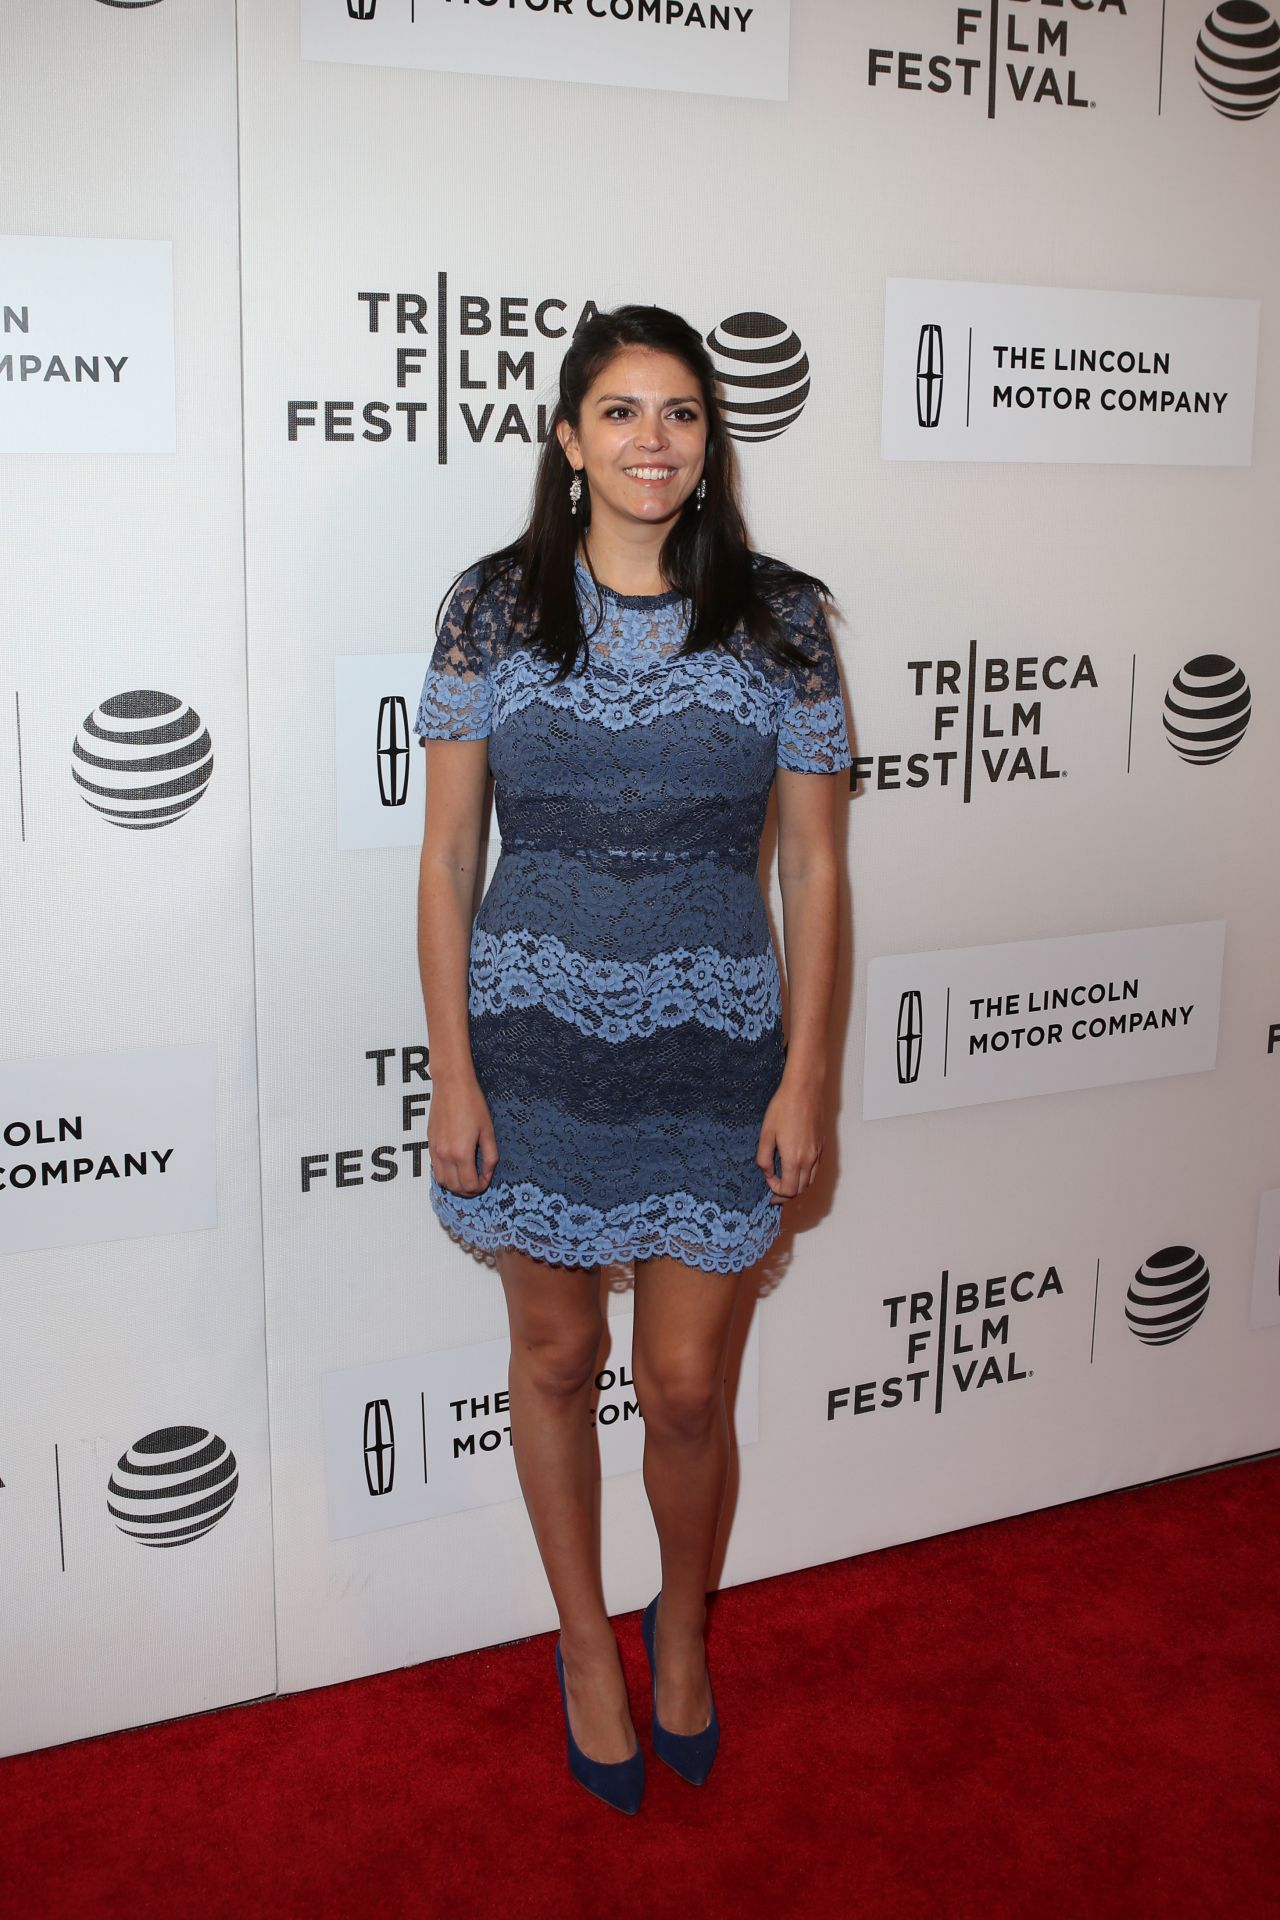 Cecily Strong - The Meddler Premiere - Tribeca Film -6952